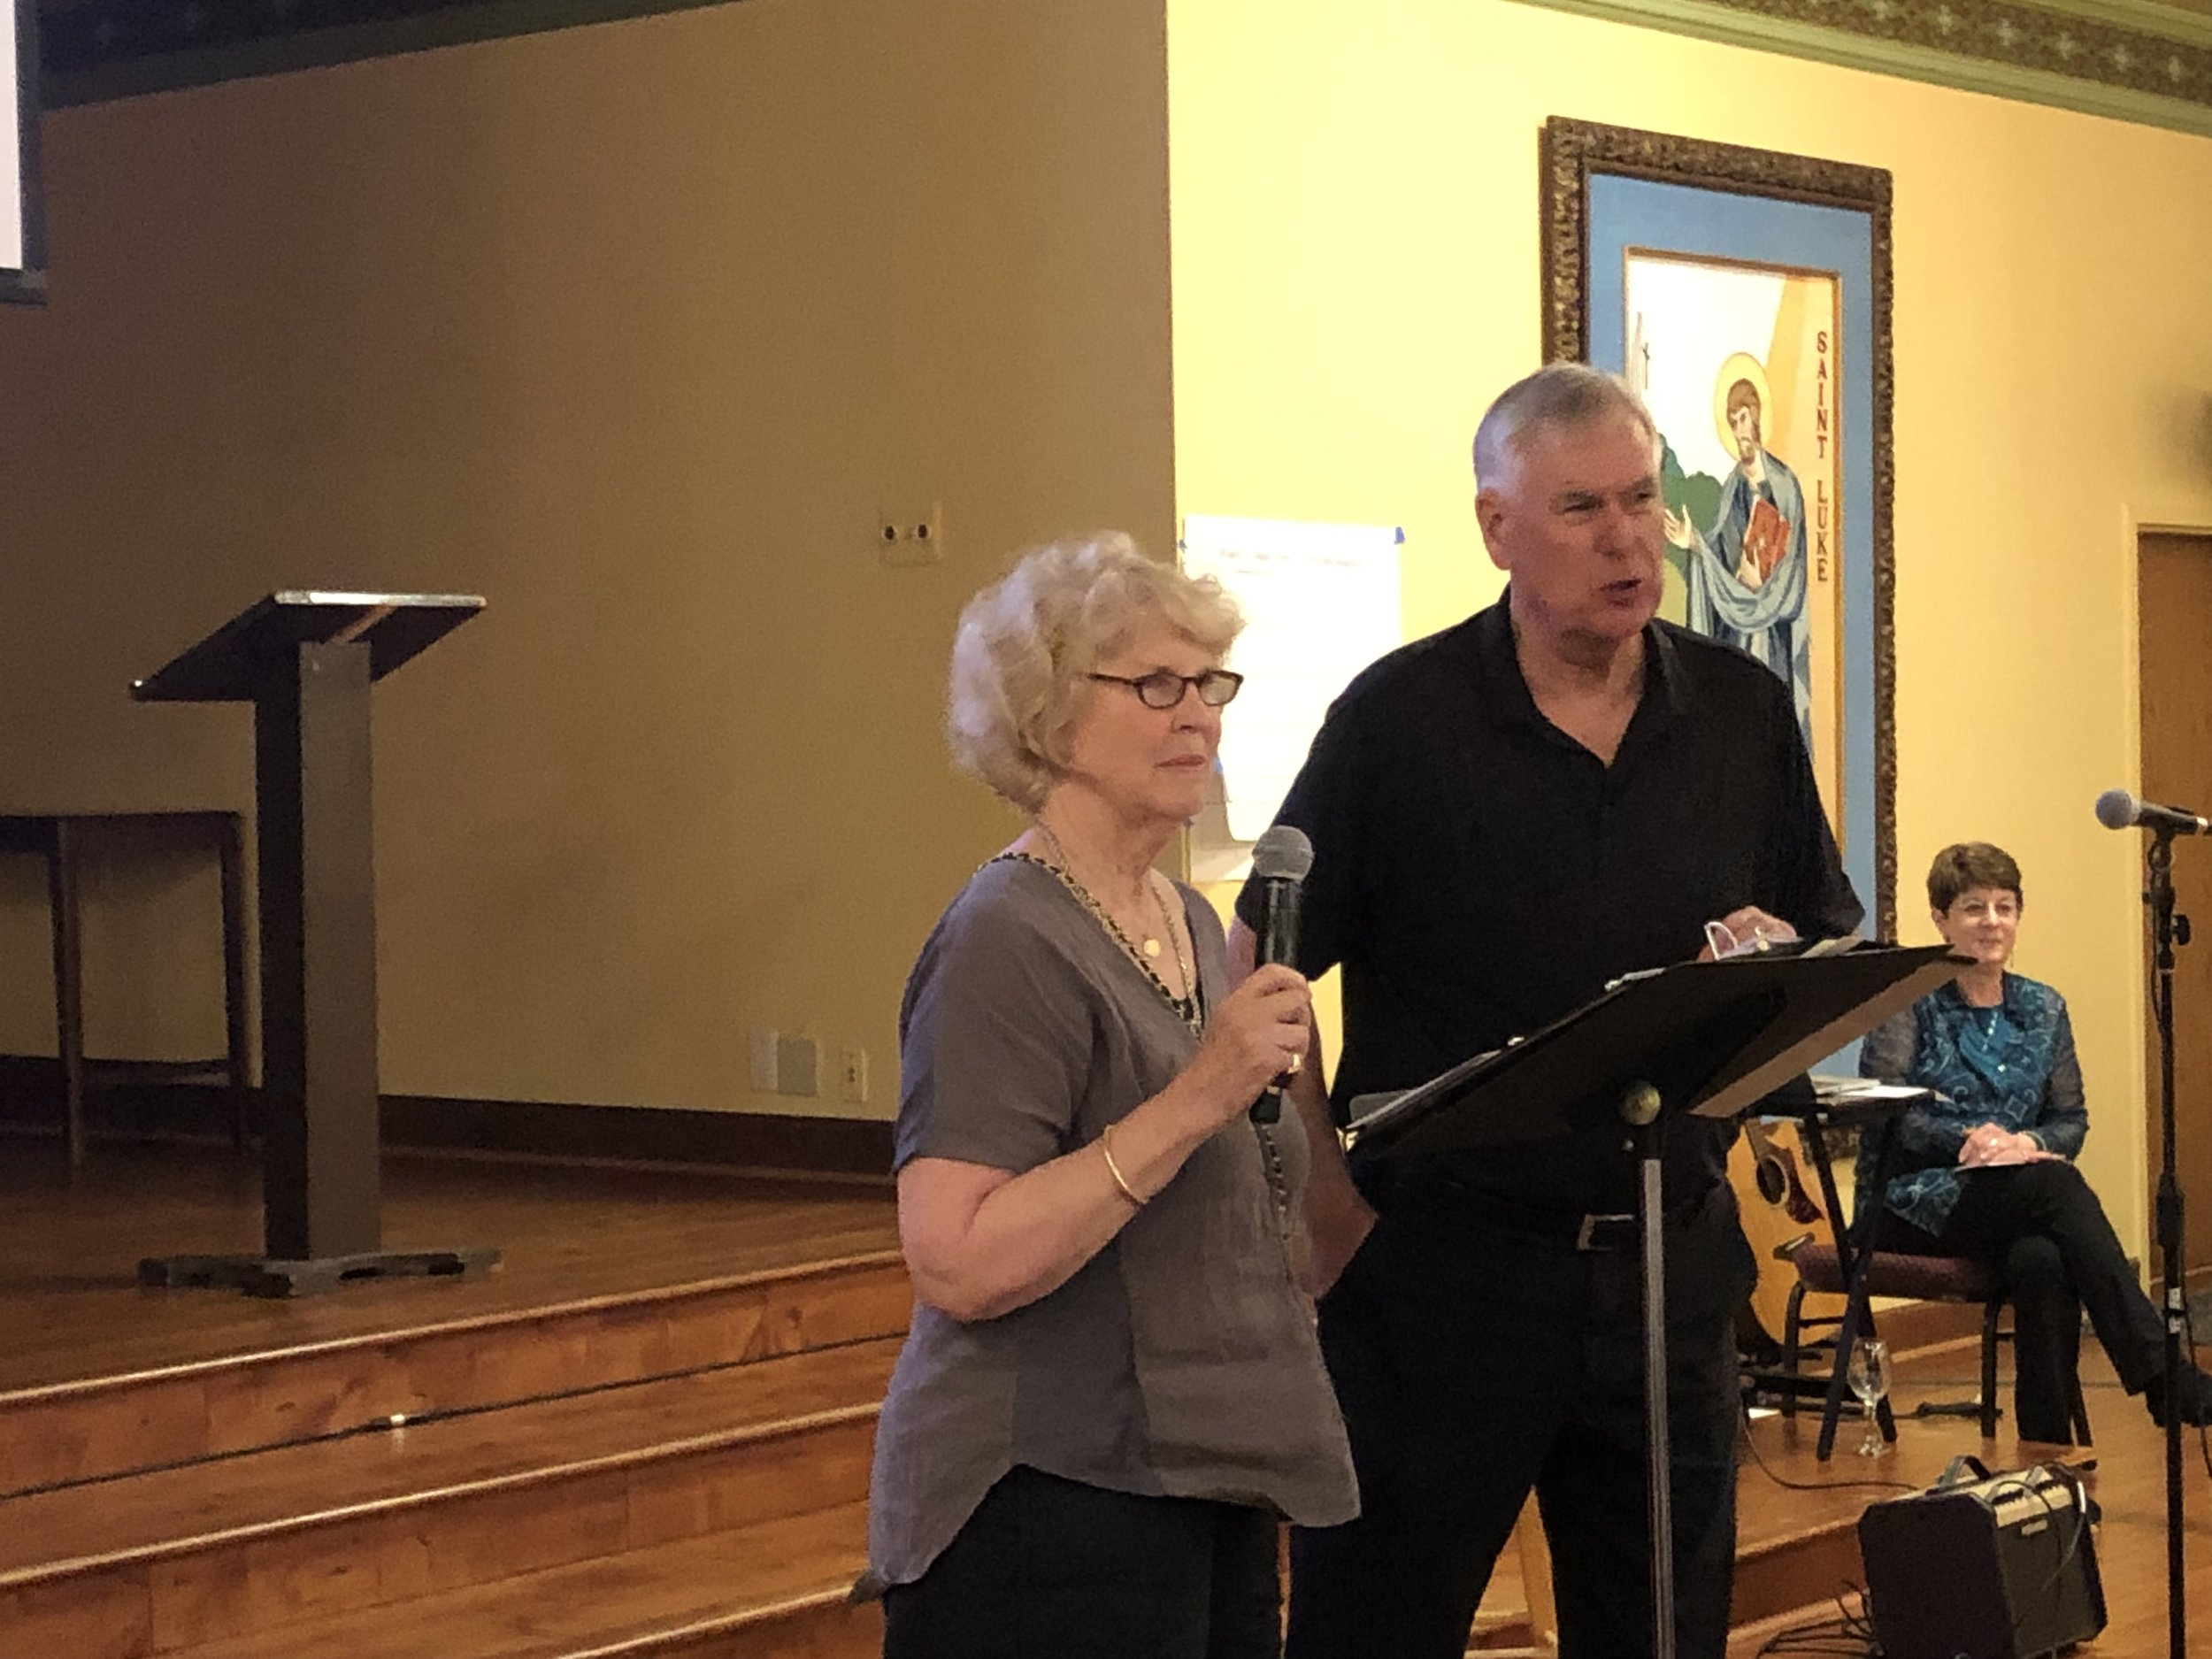 Alto (and poet) Anne Woodworth describes her poetry reading auction offering